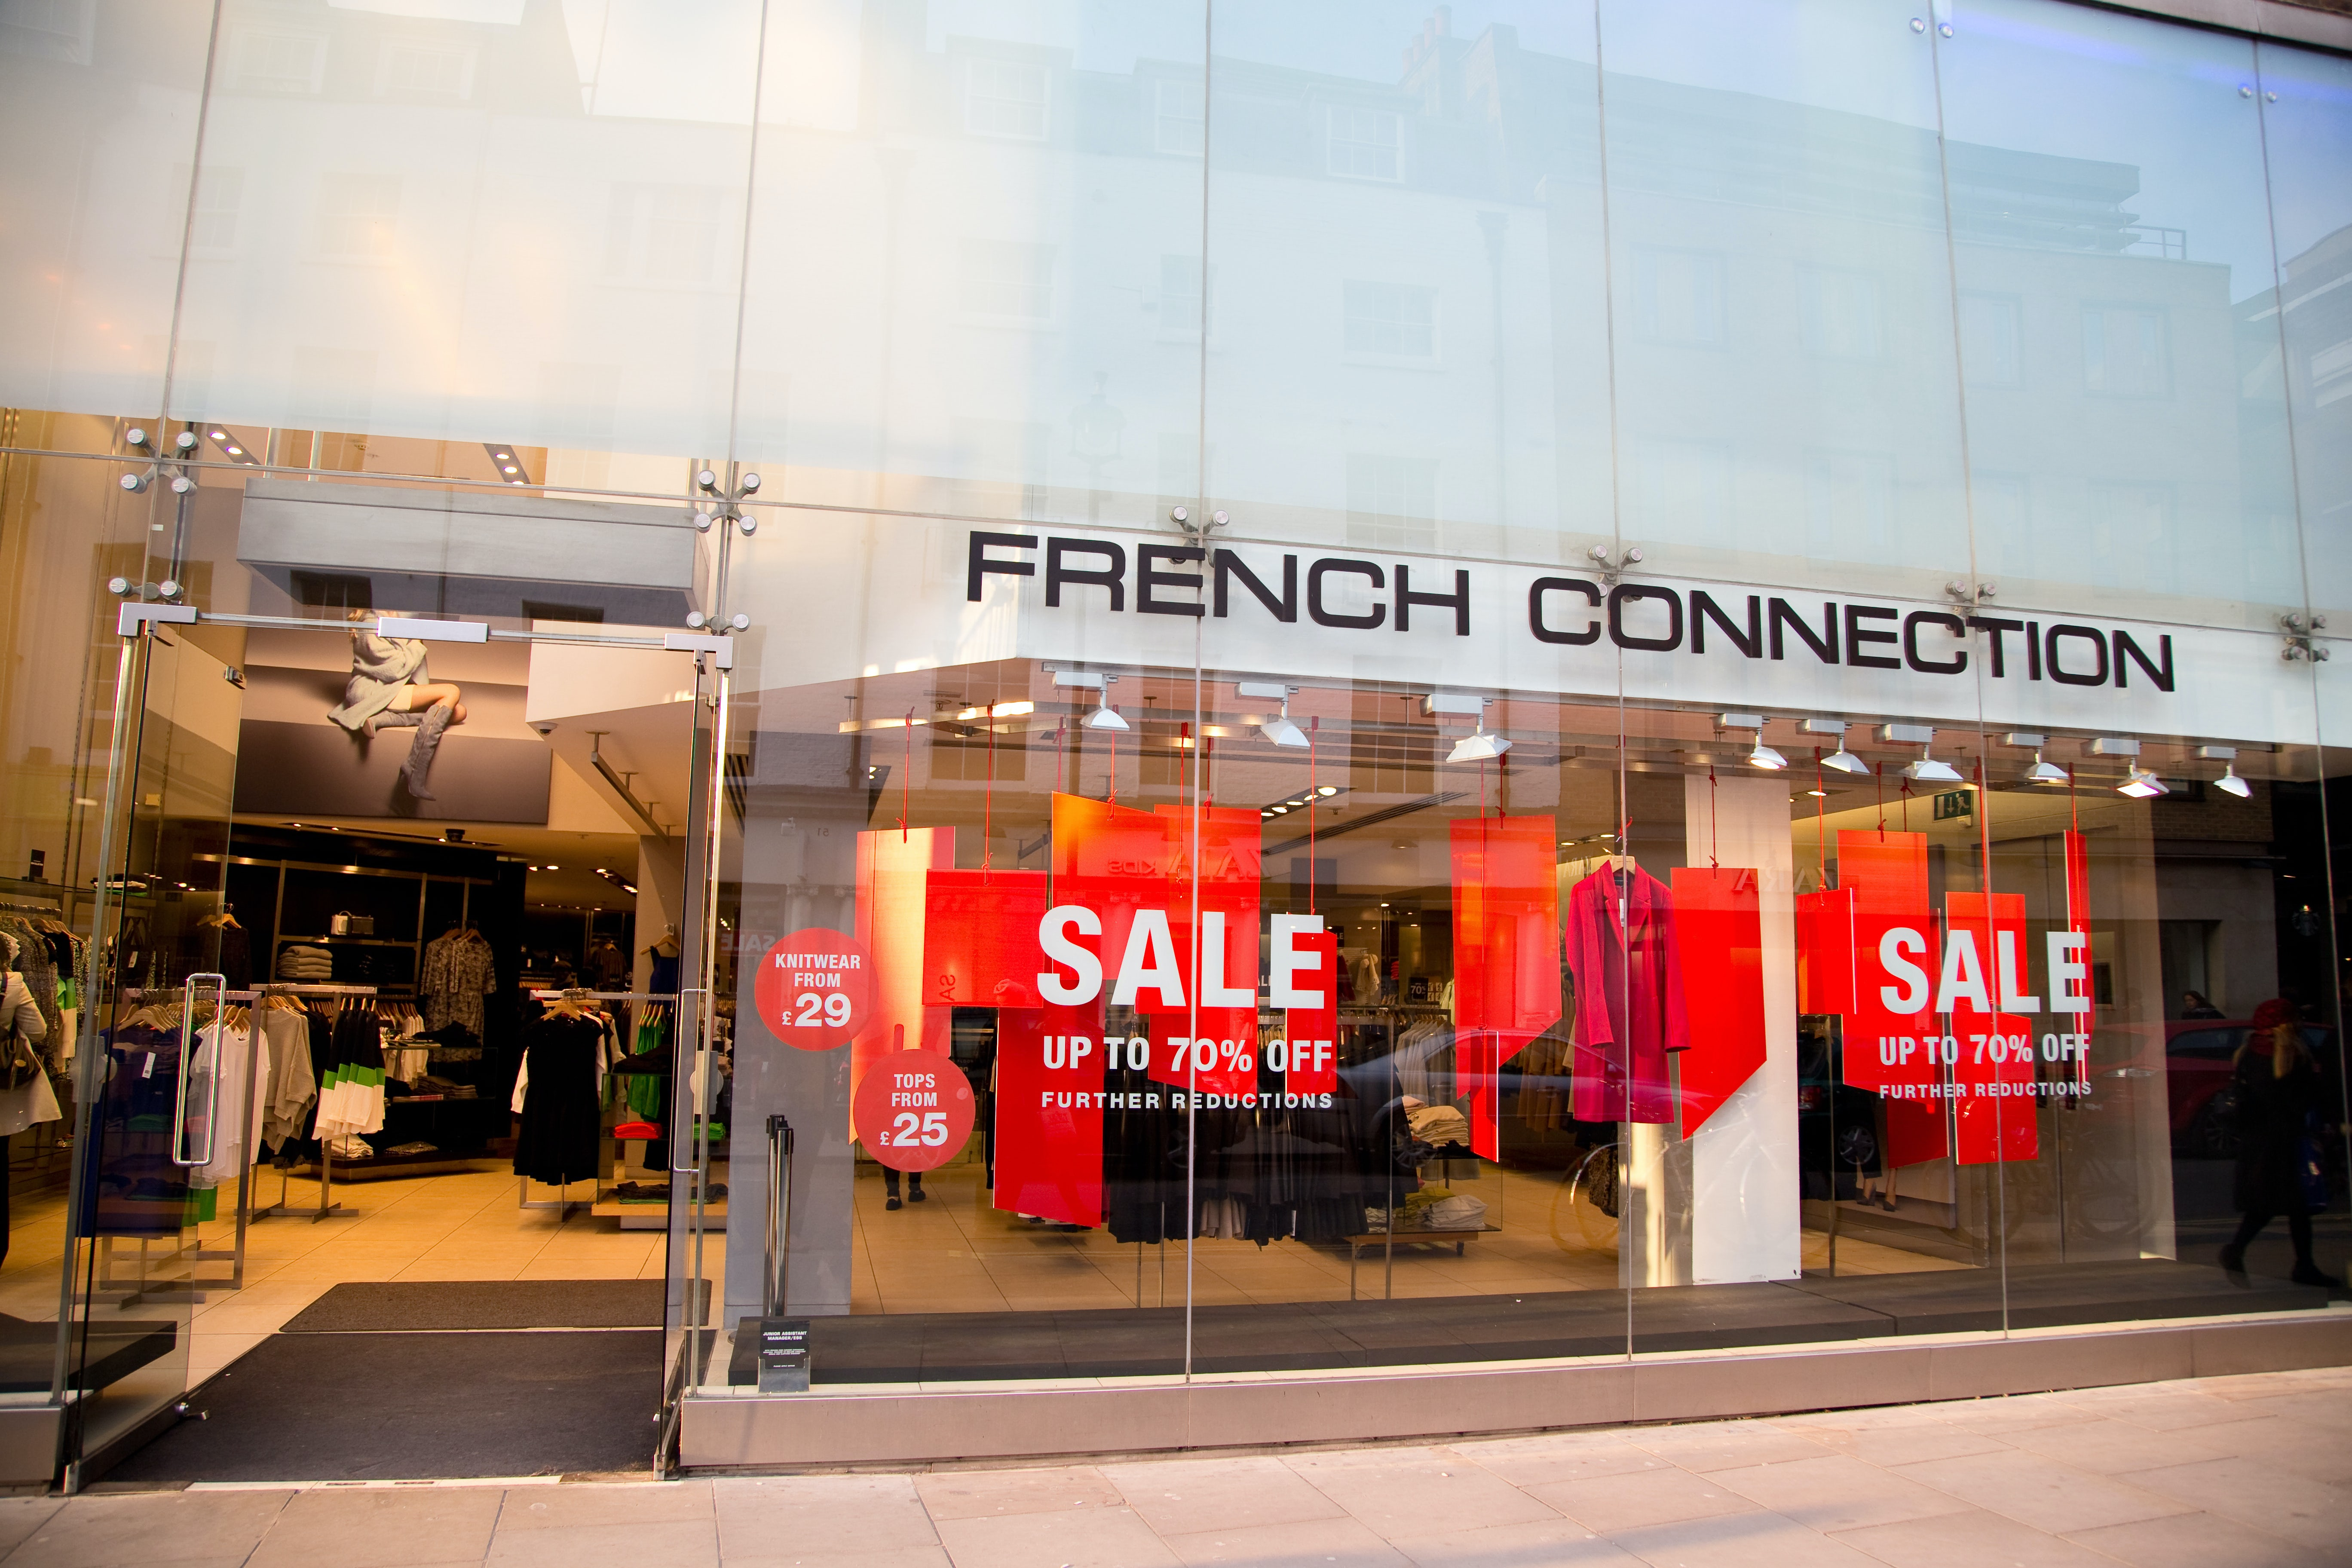 French Connection store   Source: Shutterstock